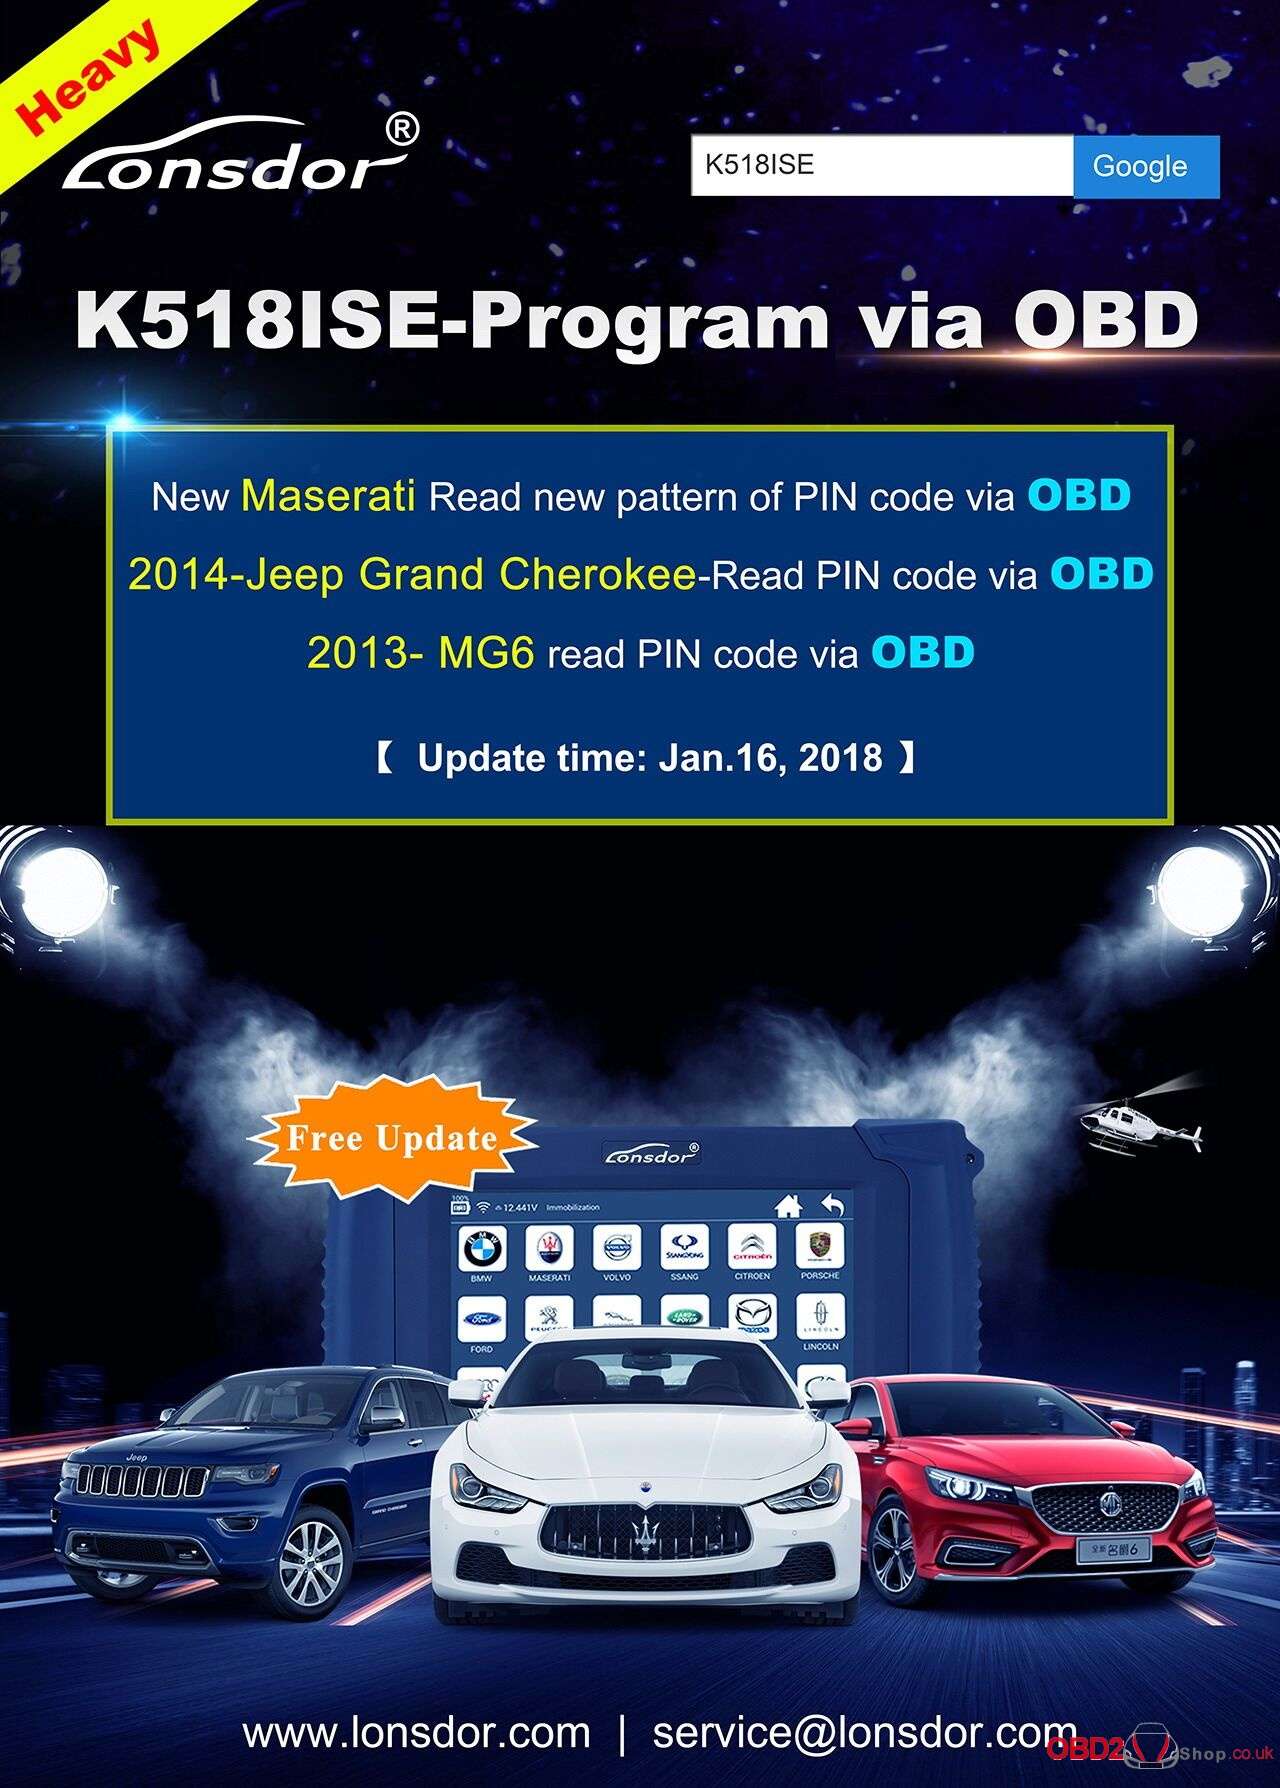 K518ISE Program via OBD